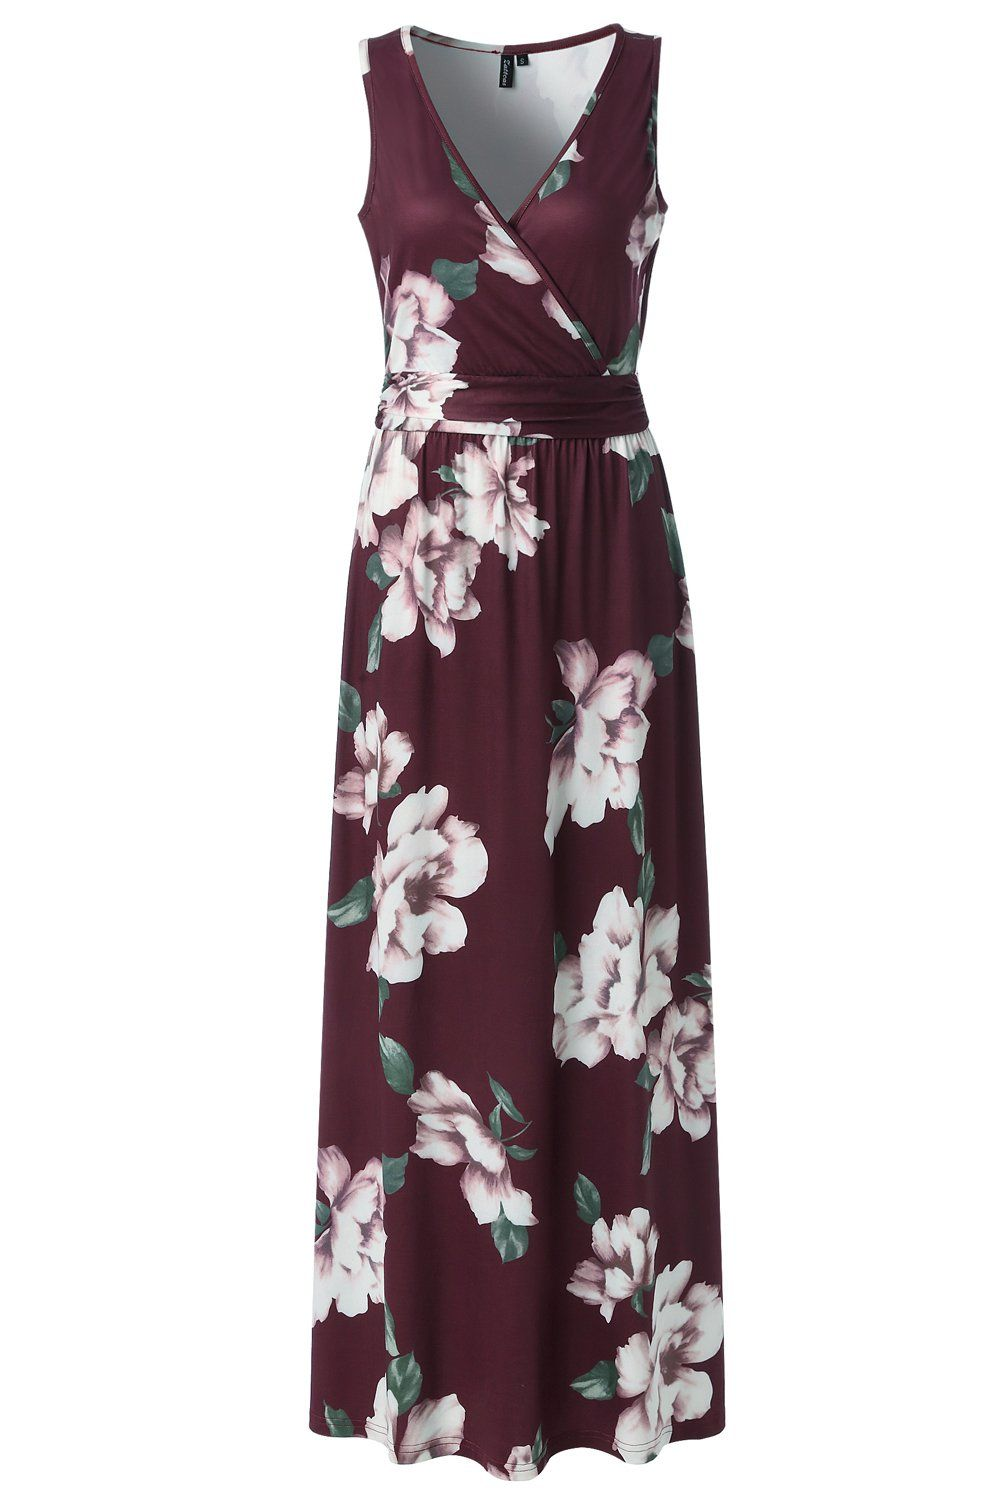 f34104c6432 Zattcas Womens V Neck Sleeveless Maxi Dress Casual Empire Floral Maxi Dress  Large Wine Red